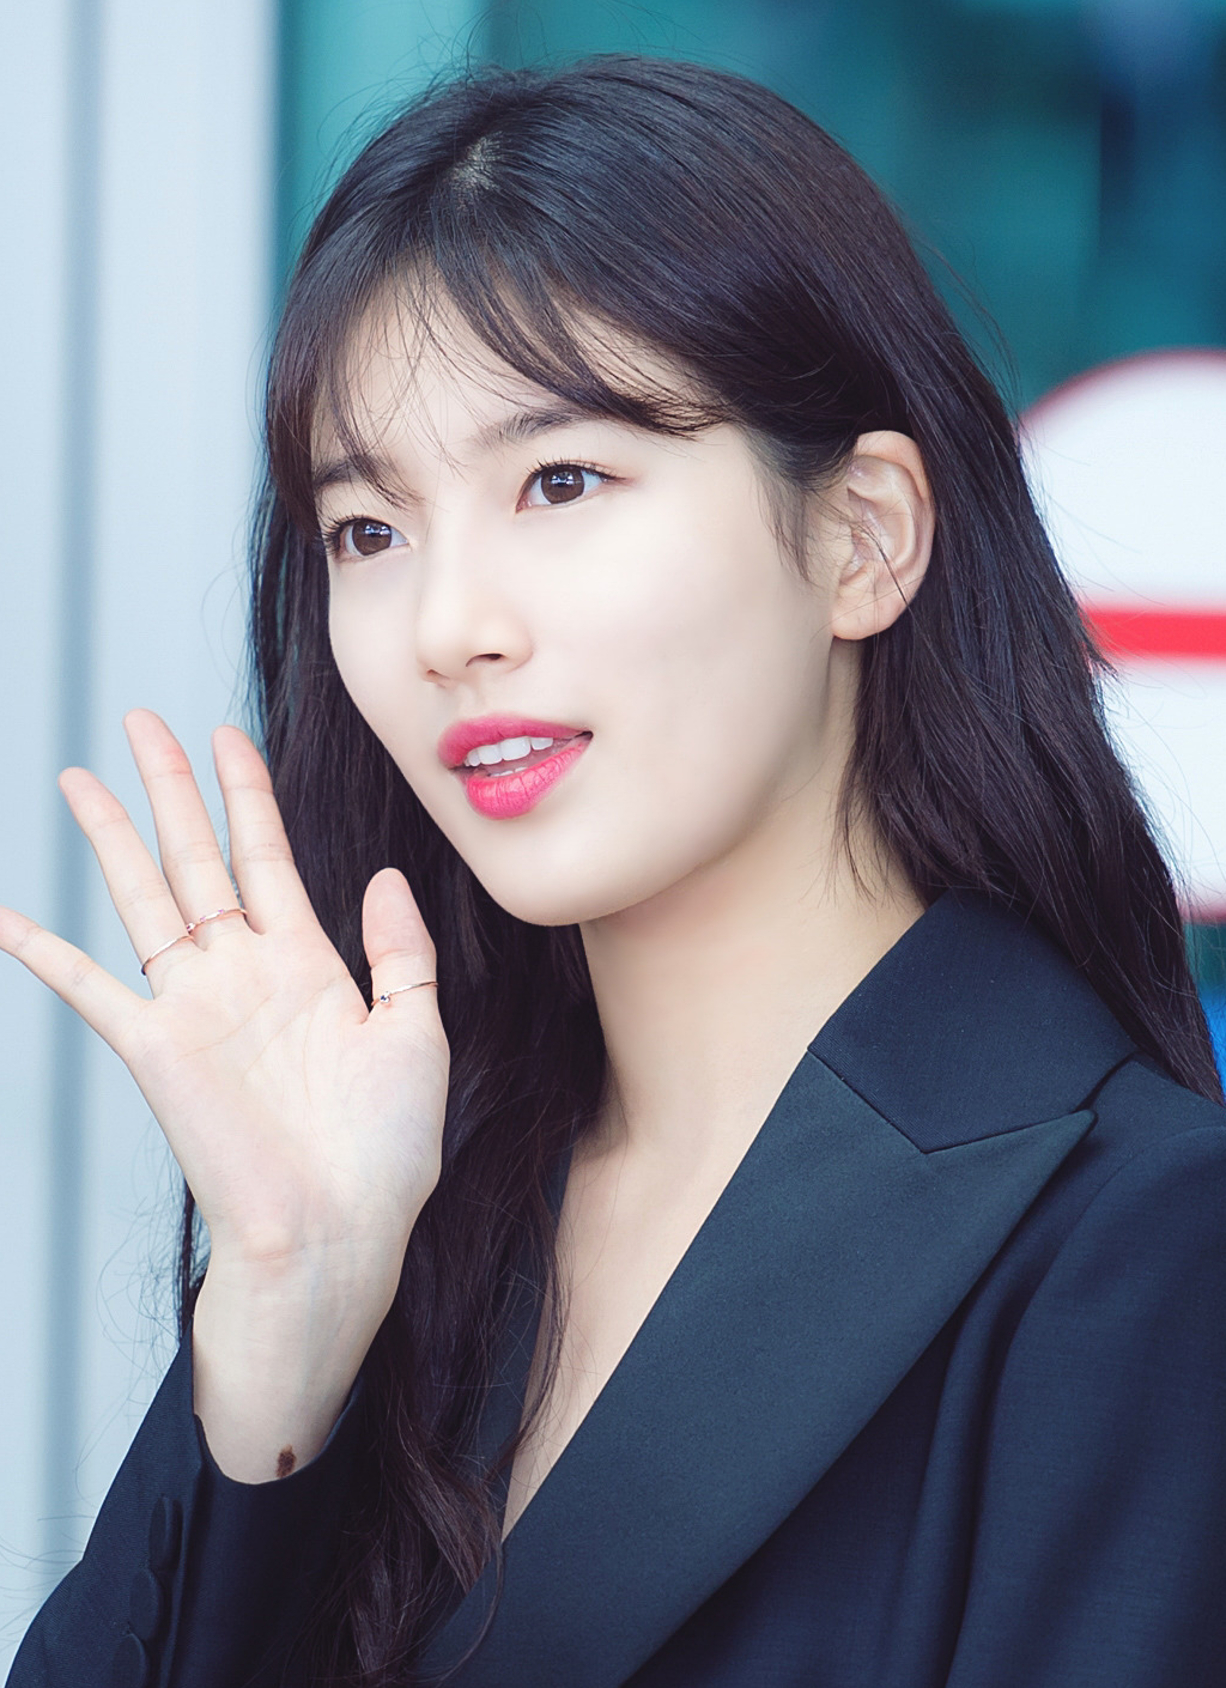 File:Bae Suzy at Incheon Airport on July 18, 2017 (3).jpg - Wikimedia Commons